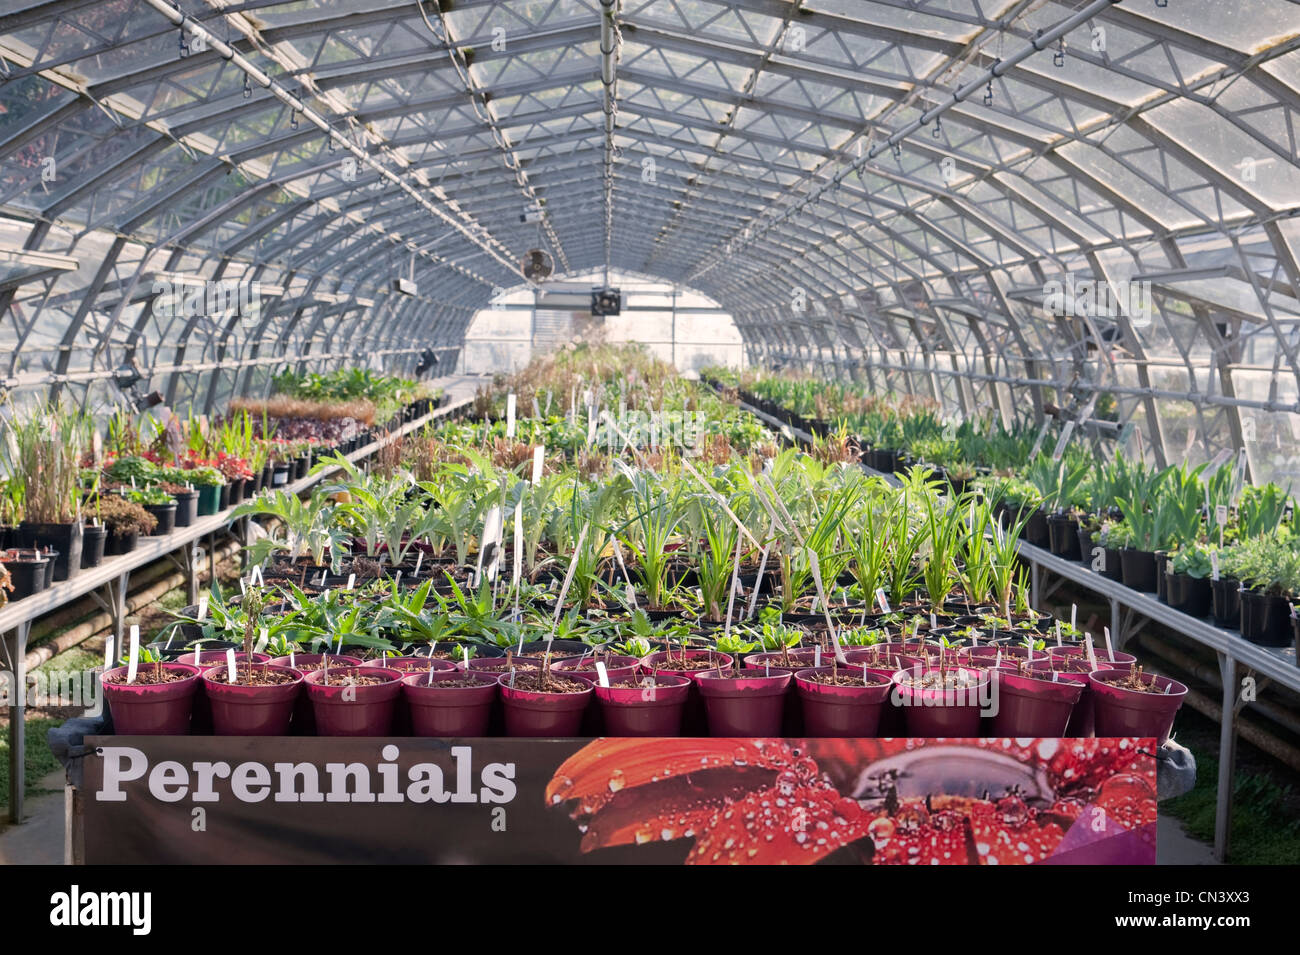 Interior of a greenhouse containing perennials - Stock Image